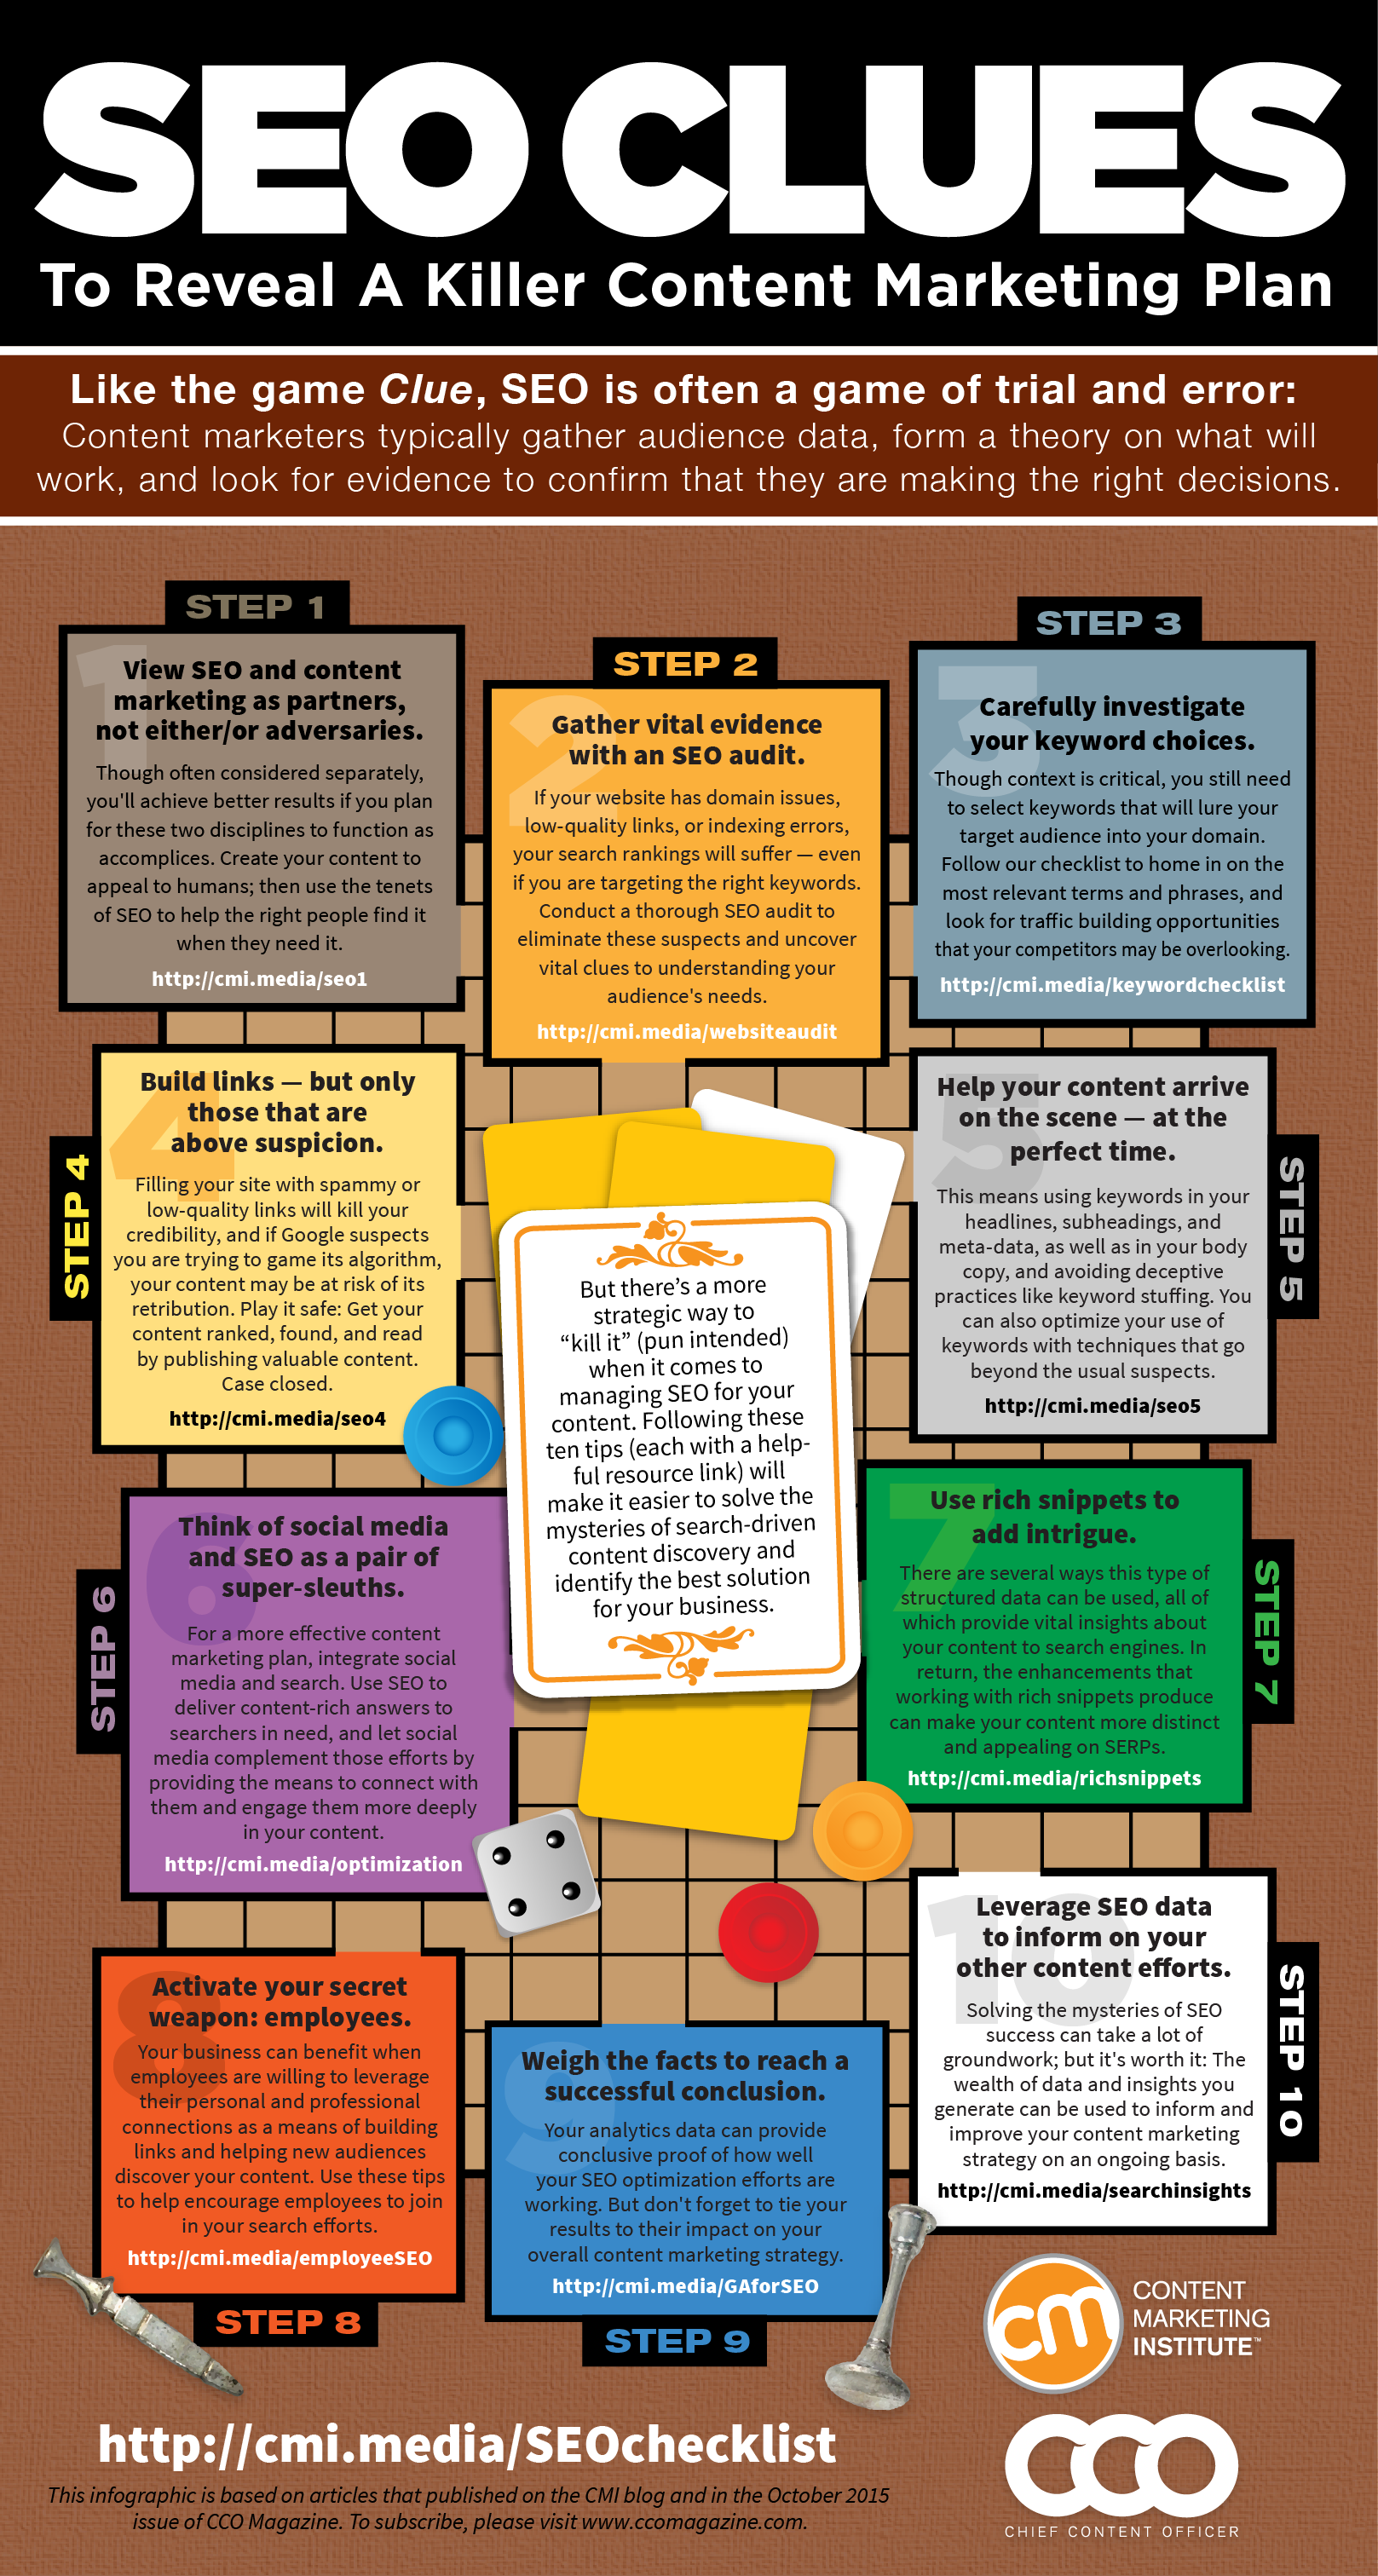 white hat seo examples Middle Class Dad SEO CLUES infographic